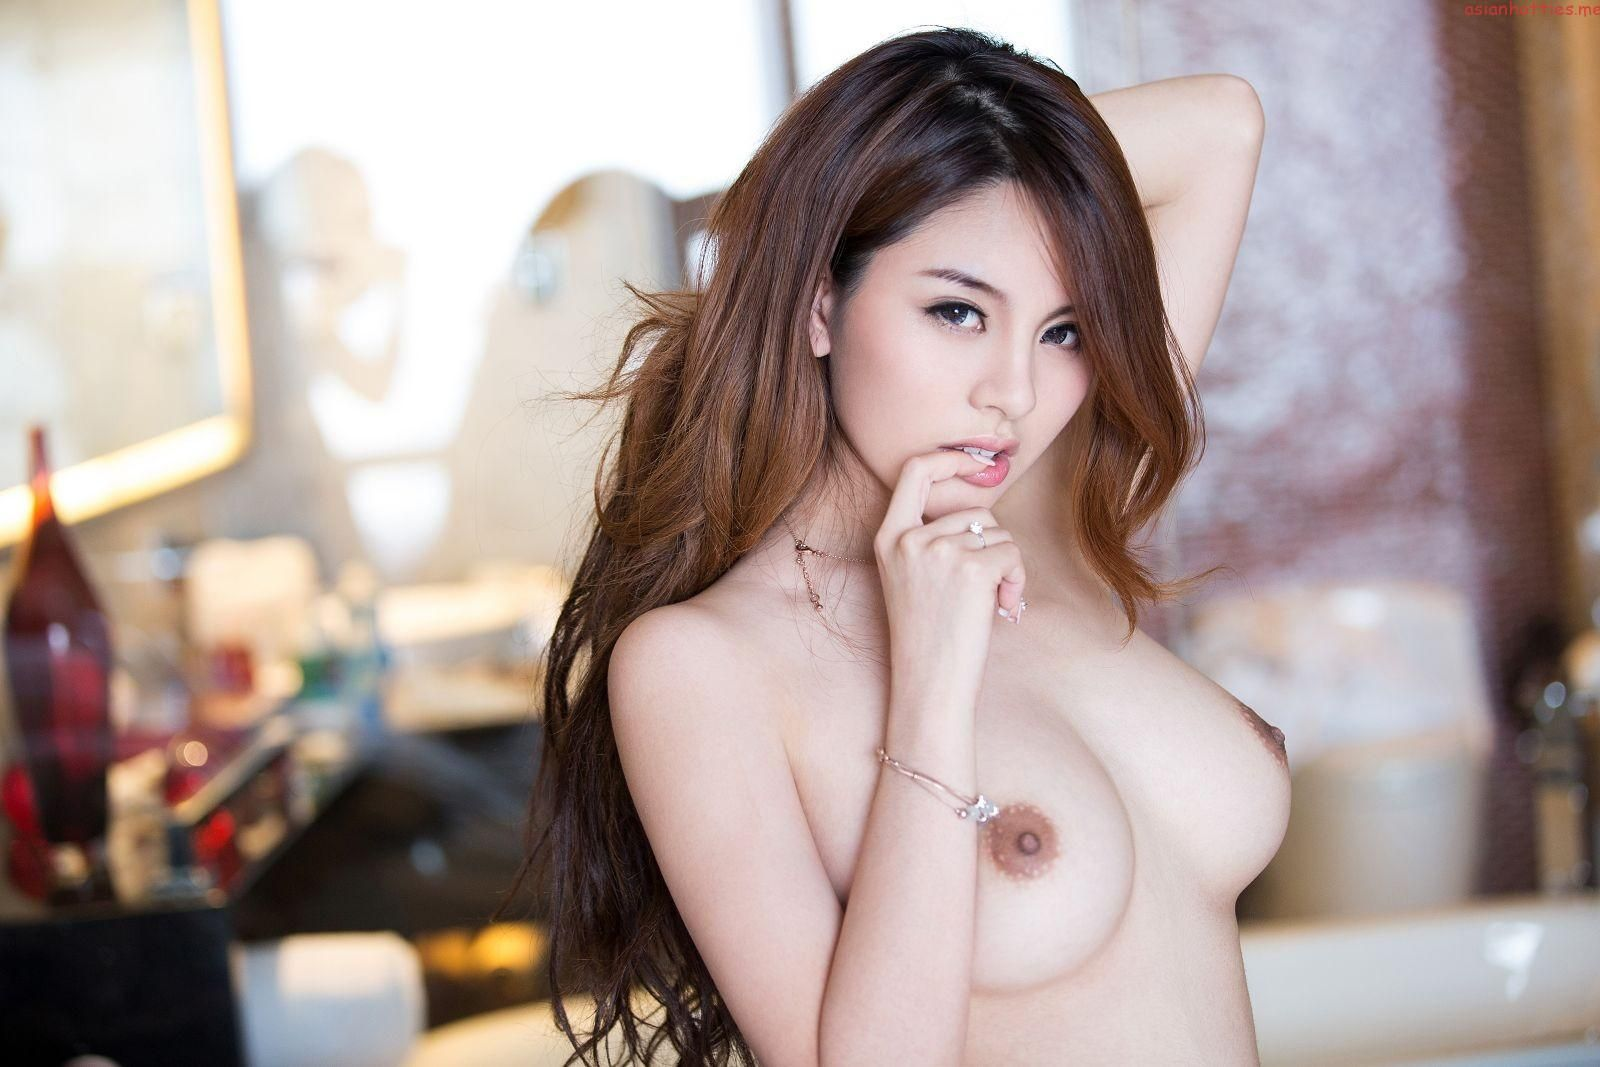 yoon-so-yi-hot-sex-porn-nude